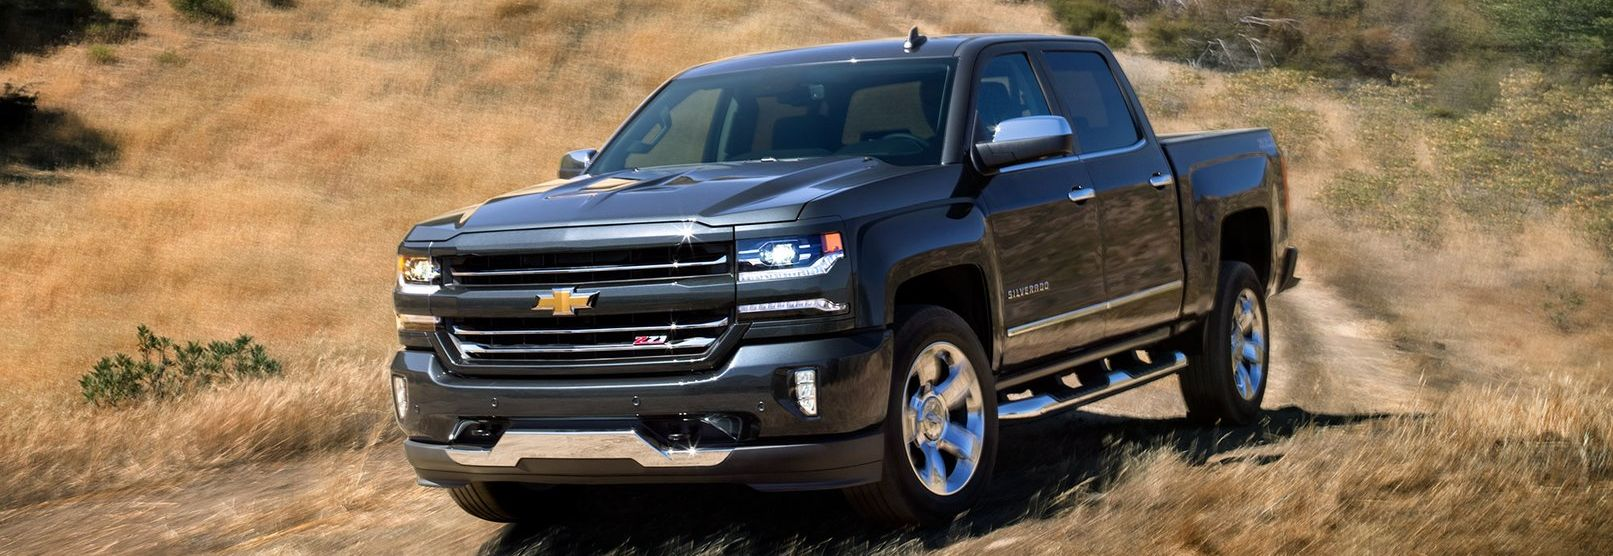 2018 Chevrolet Silverado 1500 for Sale near Taylor, MI